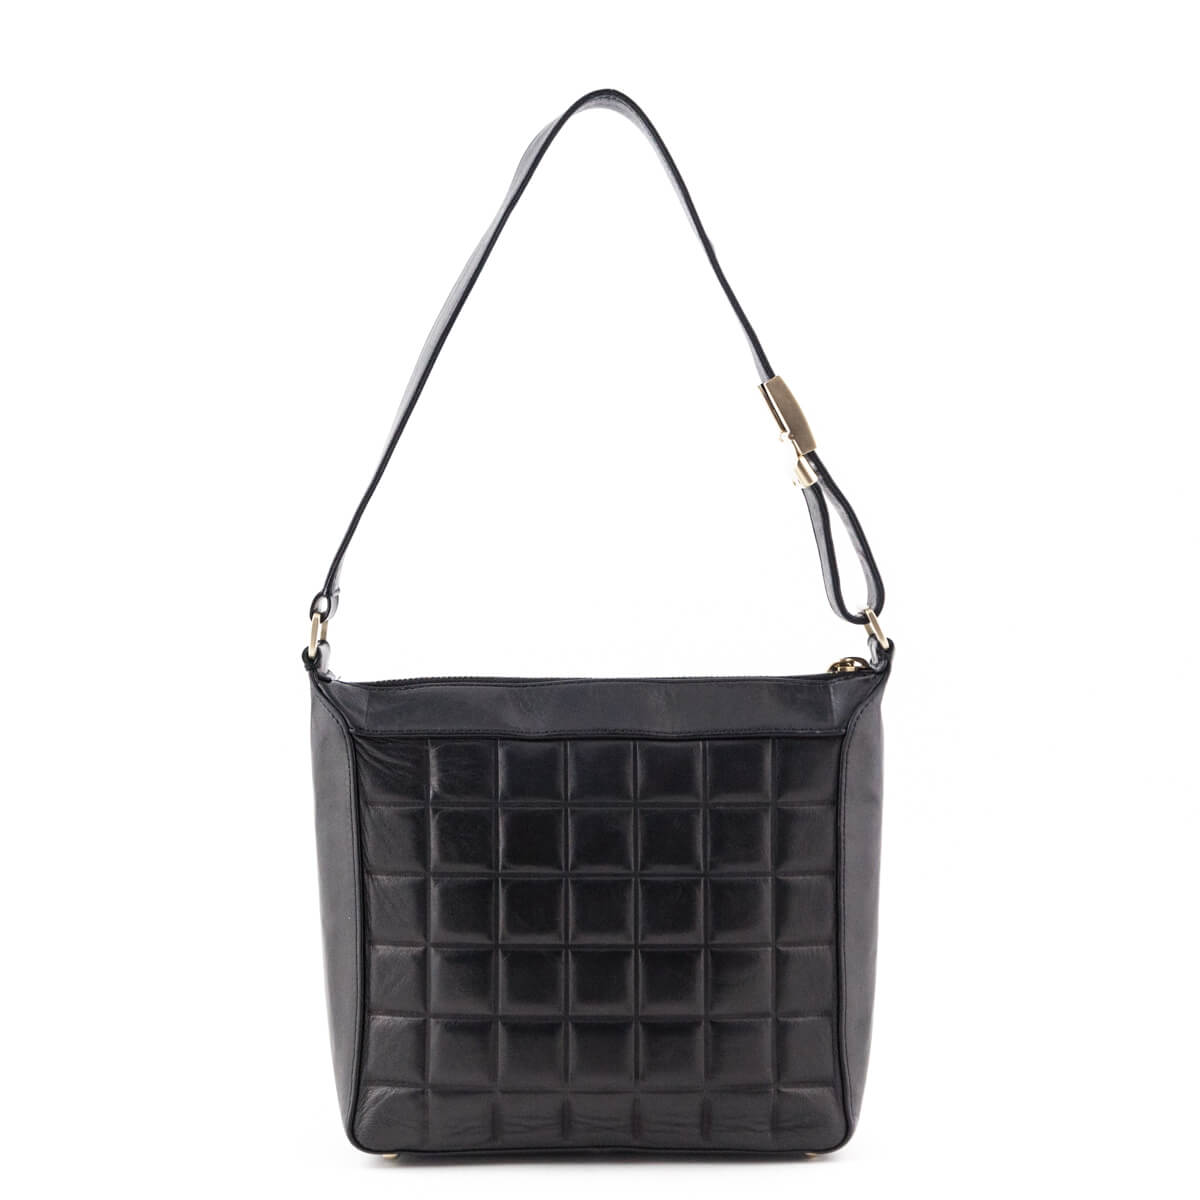 a030d2f16395 ... Chanel Black Lambskin CC Chocolate Bar Square Shoulder Bag - LOVE that  BAG - Preowned Authentic ...